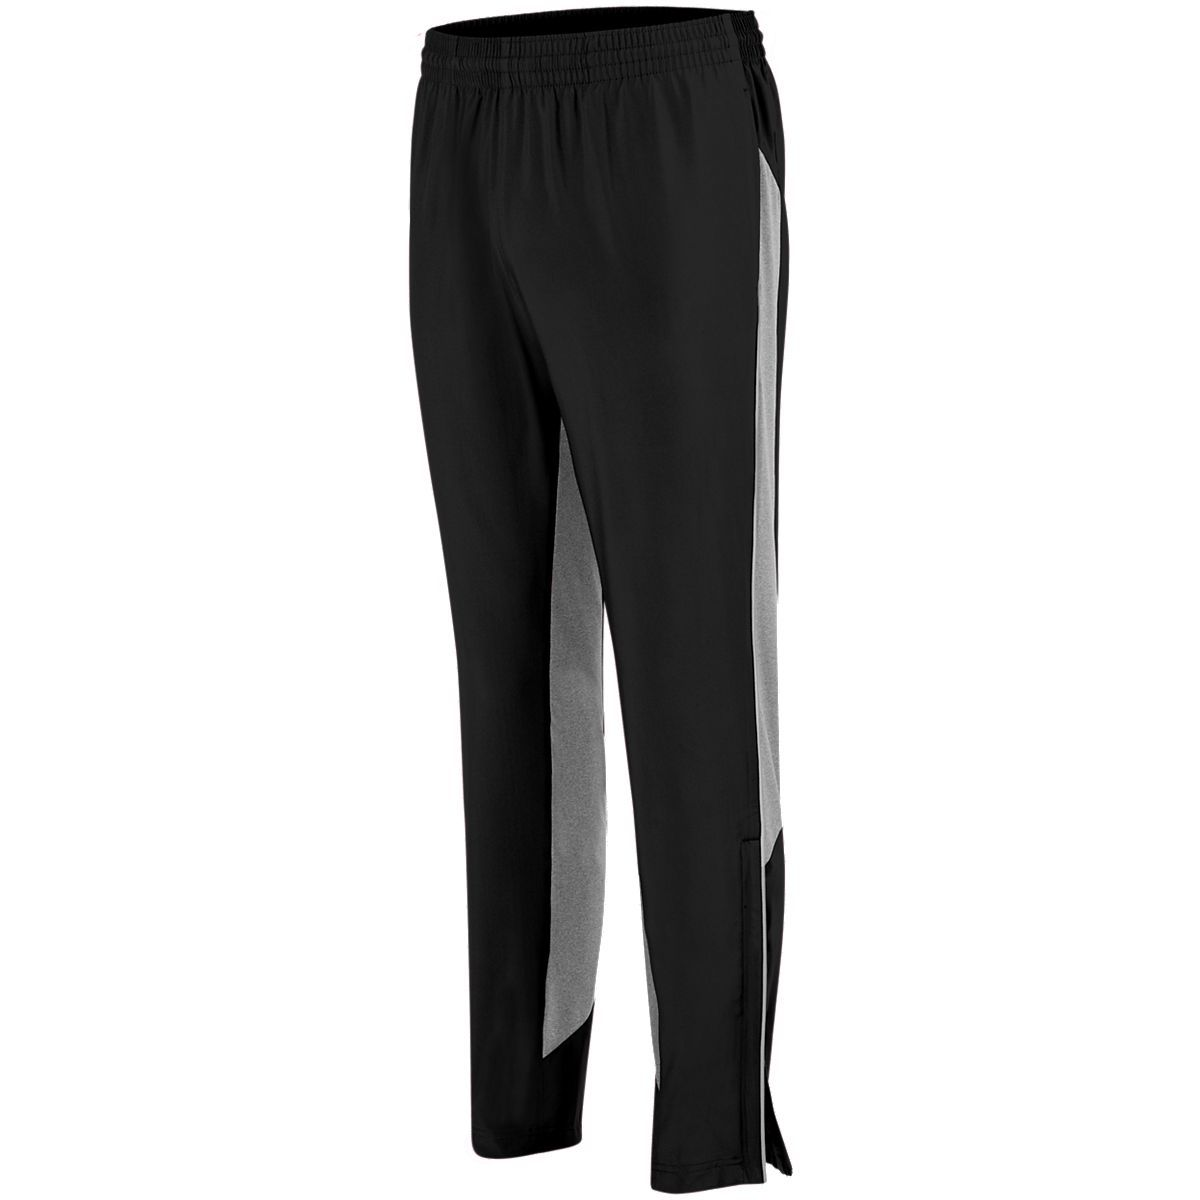 Youth Preeminent Tapered Pant - BLACK/GRAPHITE HEATHER